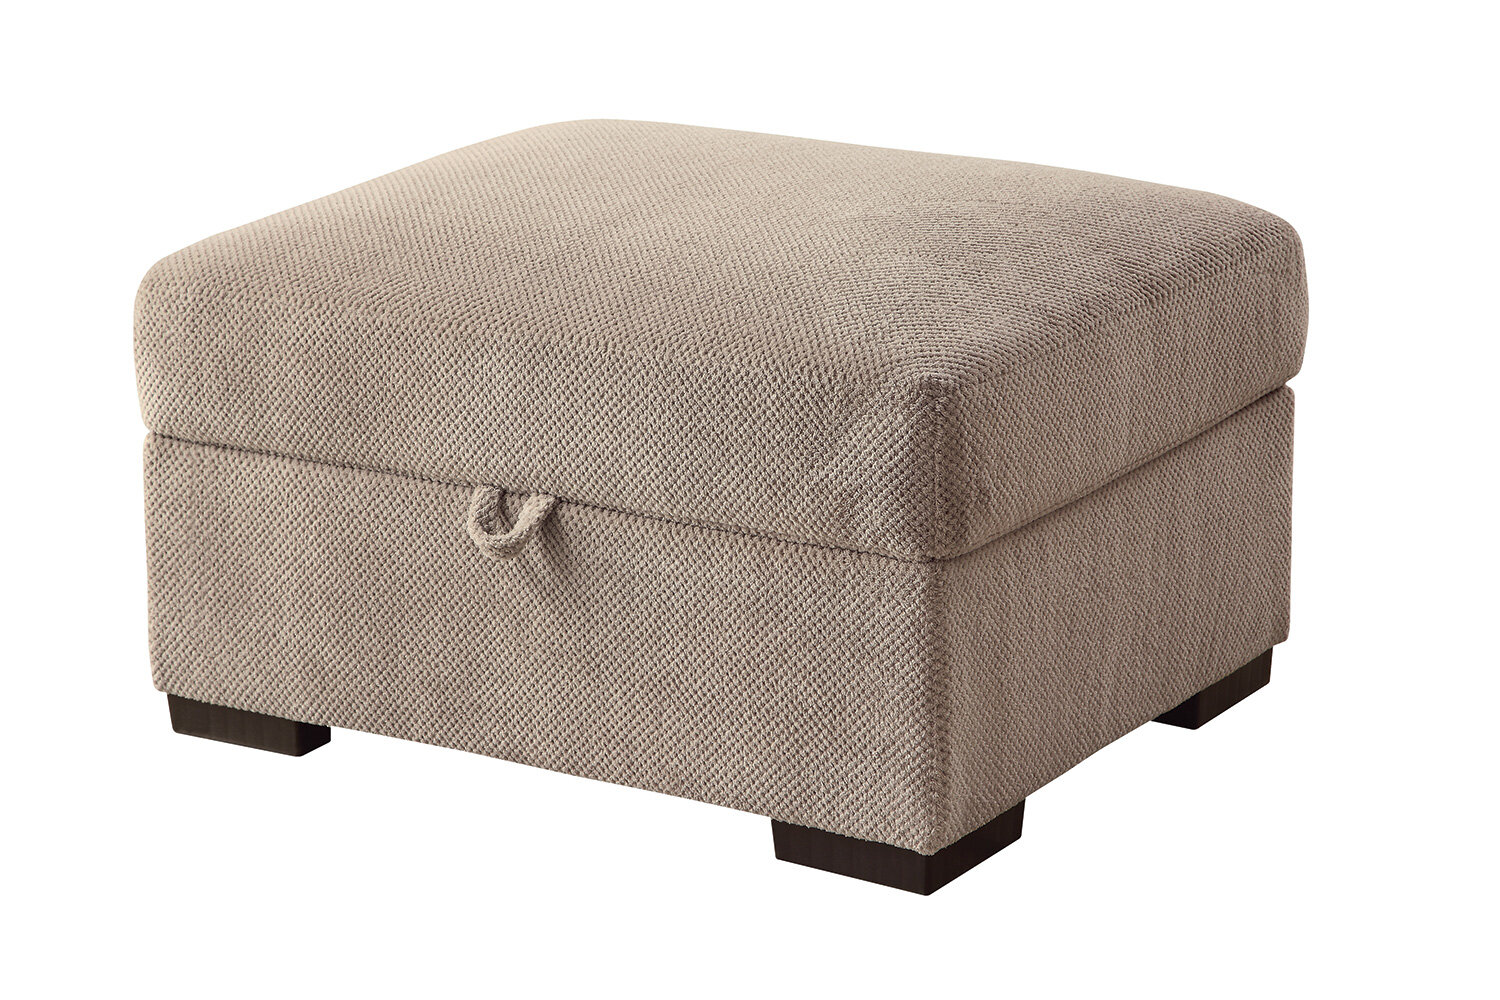 Surprising Axton Storage Ottoman Gmtry Best Dining Table And Chair Ideas Images Gmtryco